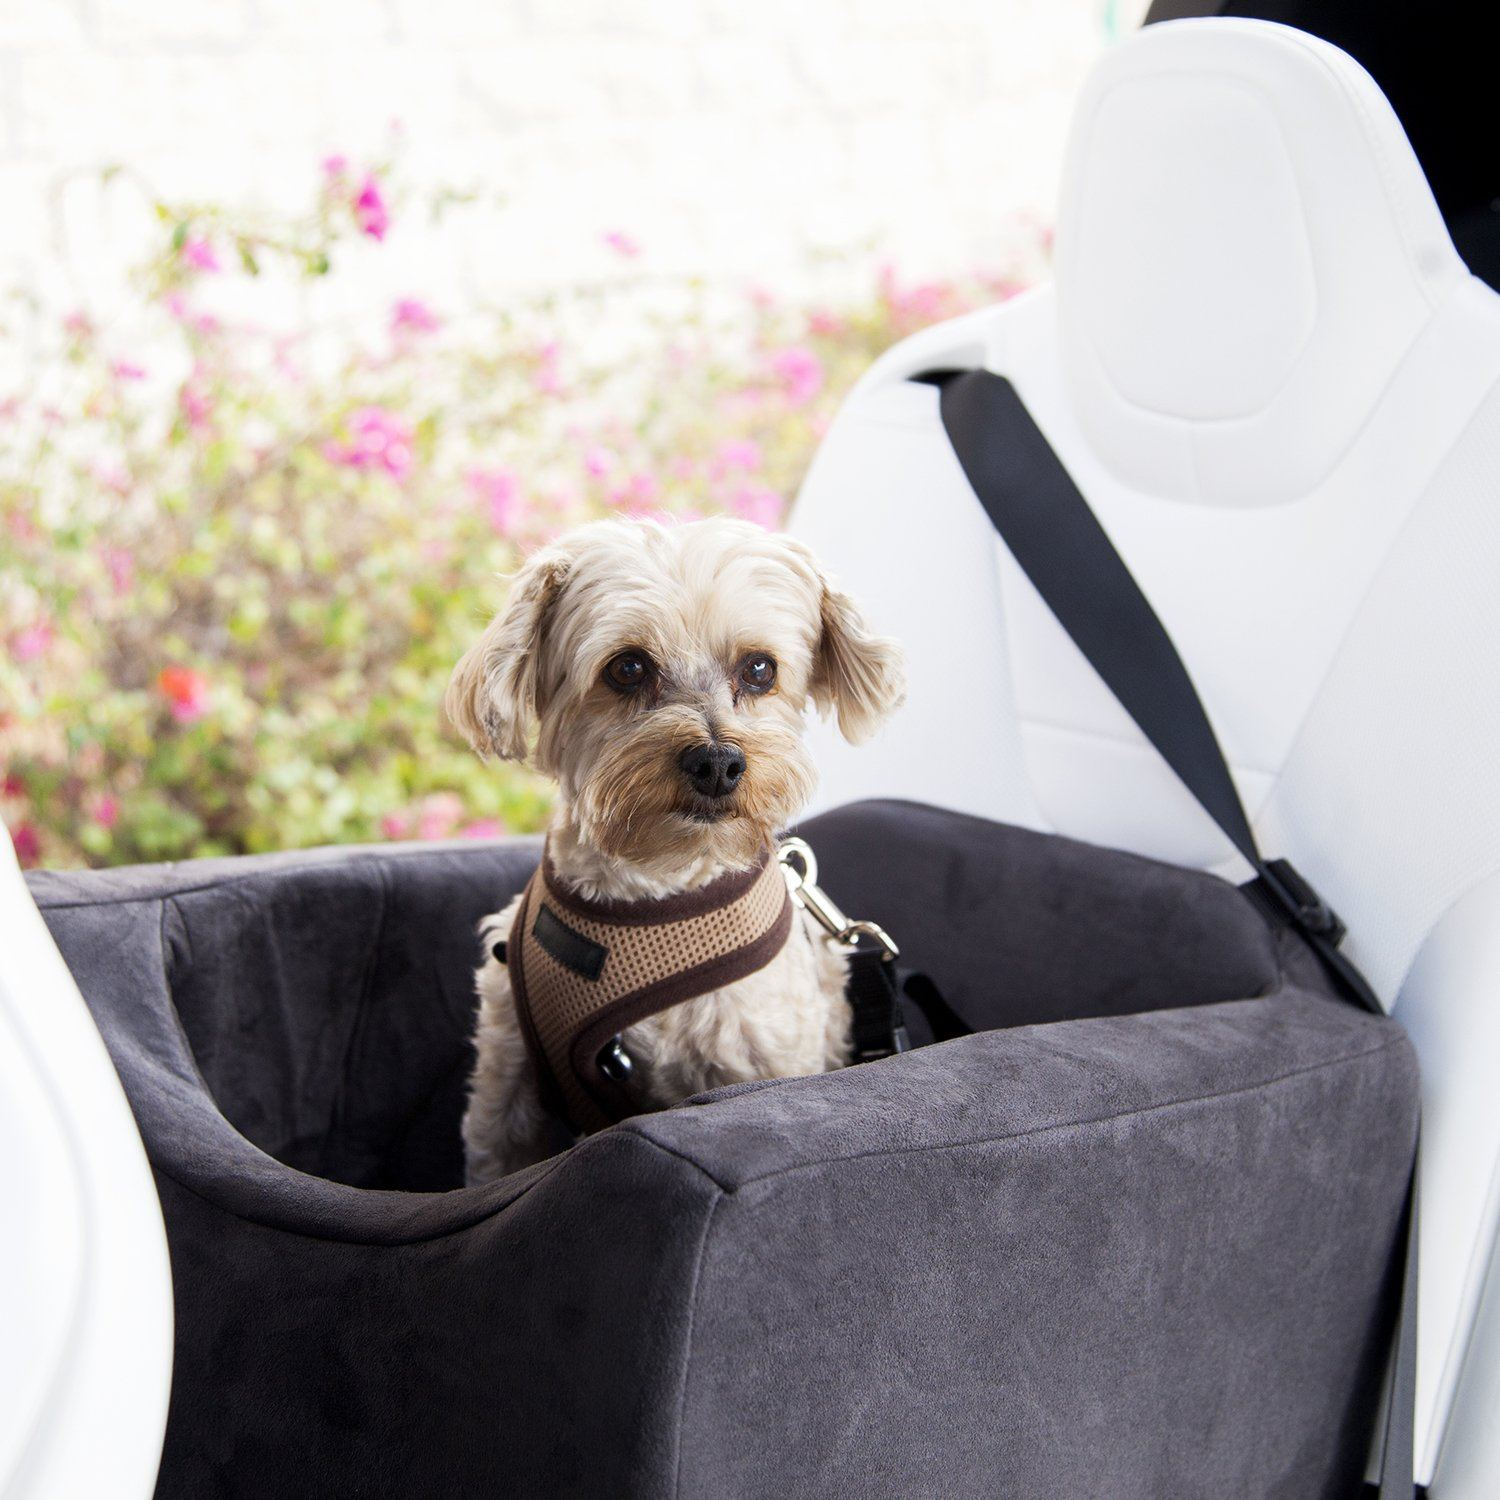 Animals Matter Car & Travel Collection for Dogs and Pets